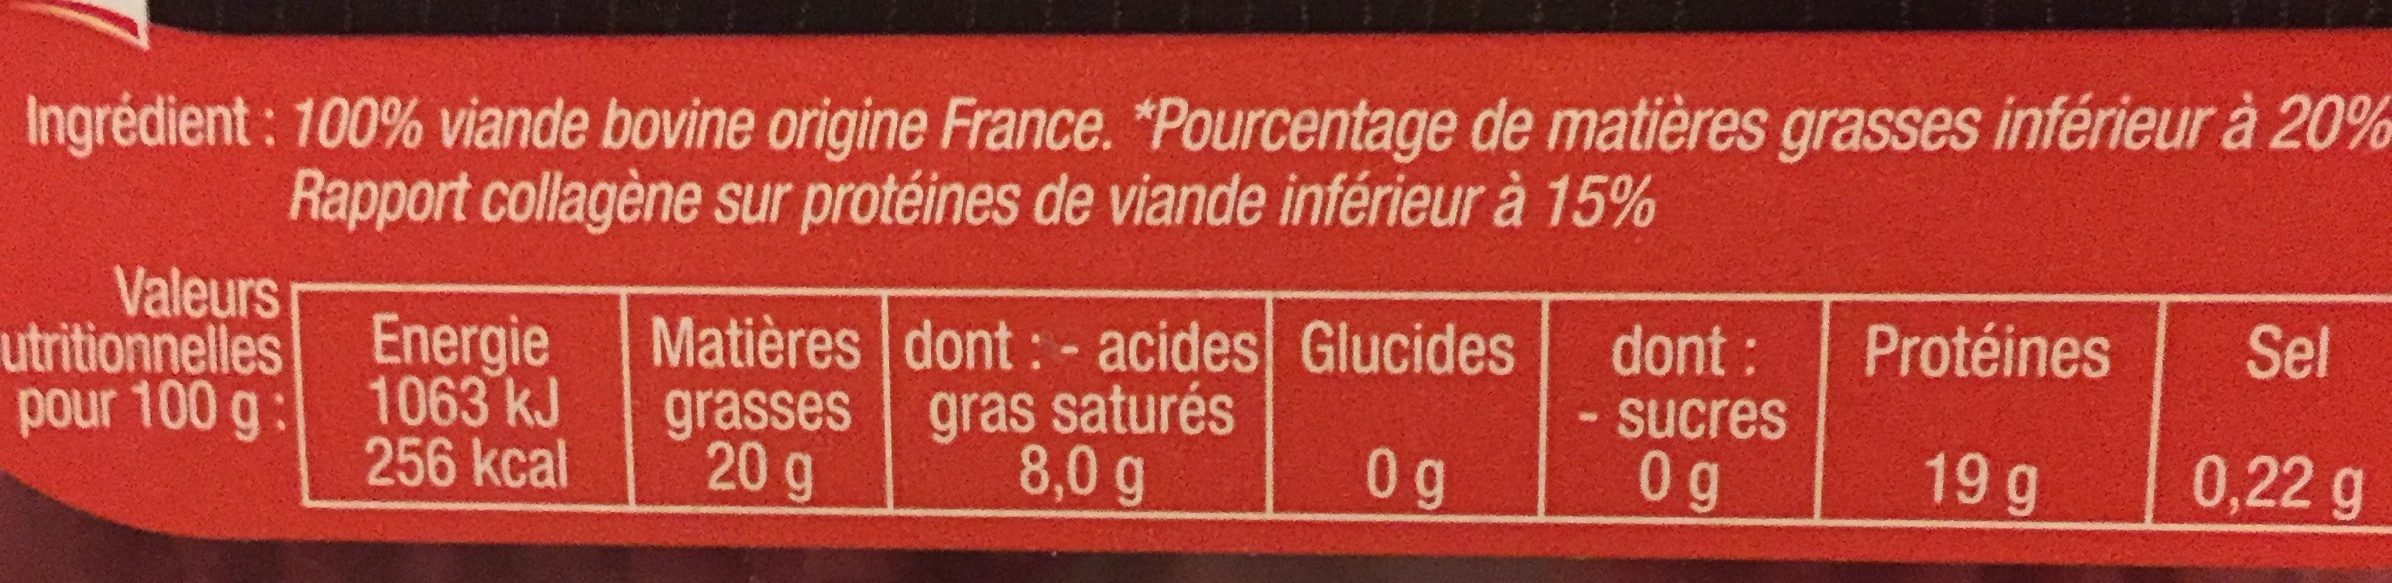 Hachés Pur Bœuf - Ingredients